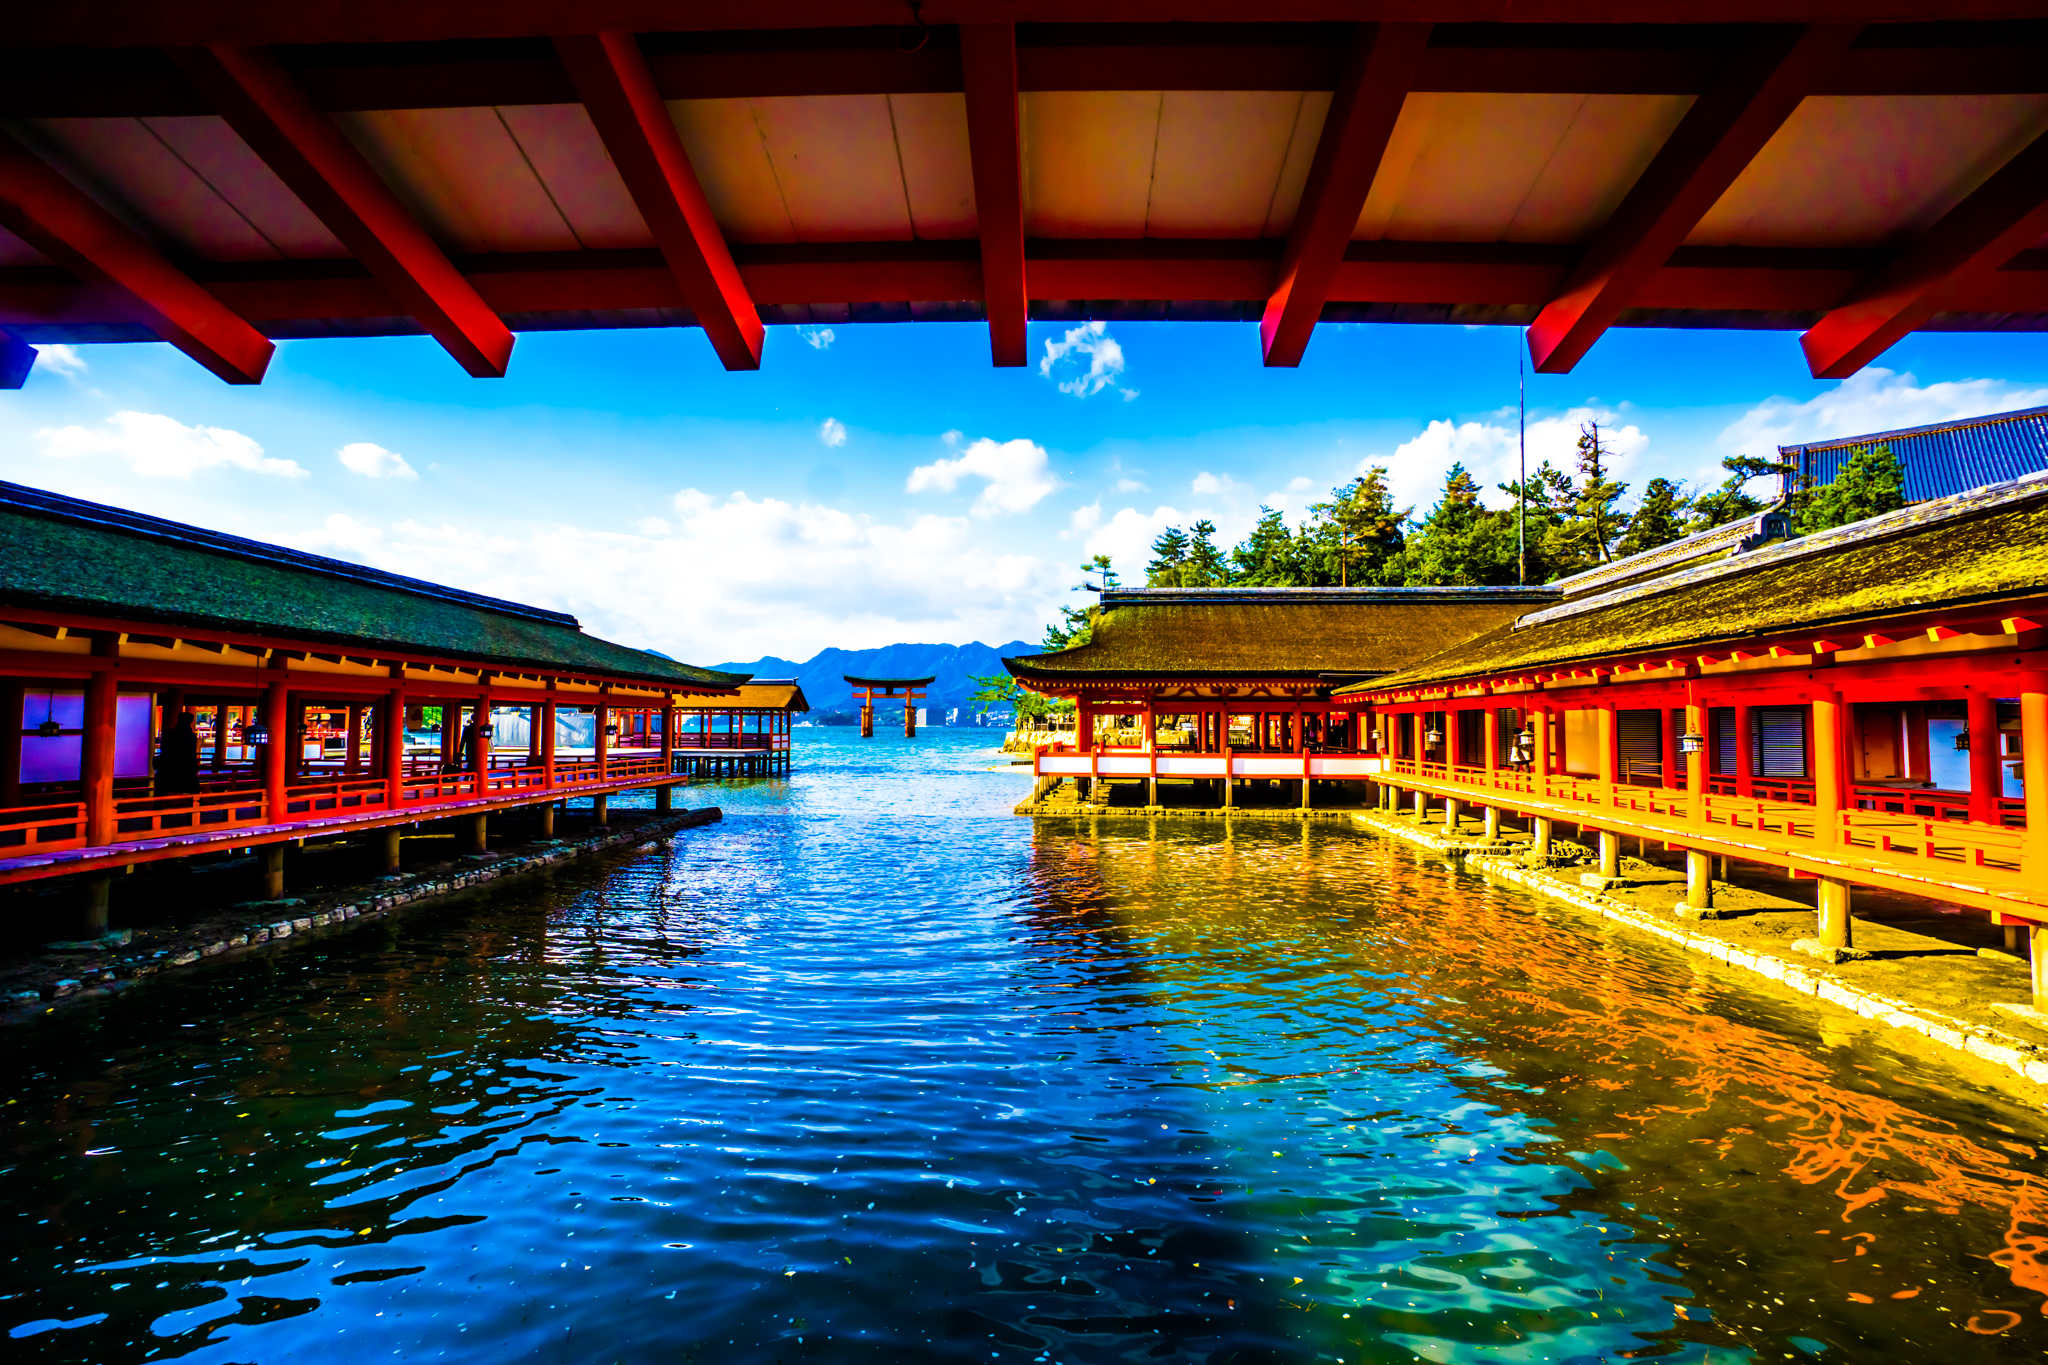 itsukushima shrine featured image